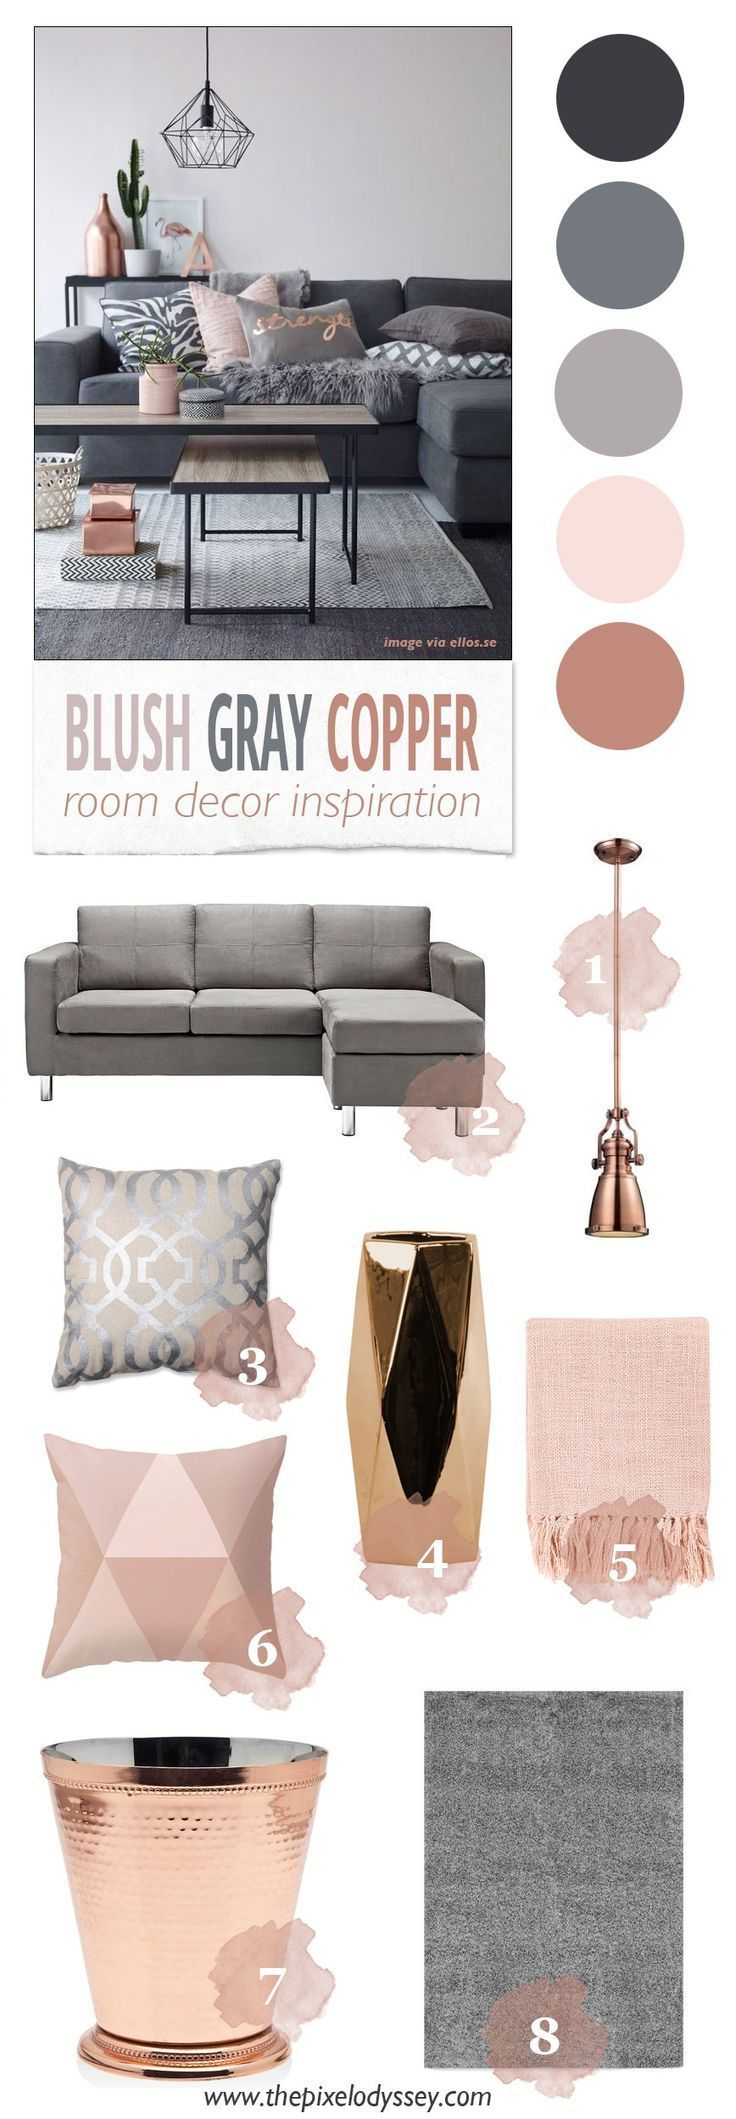 nice Blush Gray Copper Room Decor Inspiration - The Pixel Odyssey by http://www.top-100-home-decor-pics.us/living-room-decorations/blush-gray-copper-room-decor-inspiration-the-pixel-odyssey/